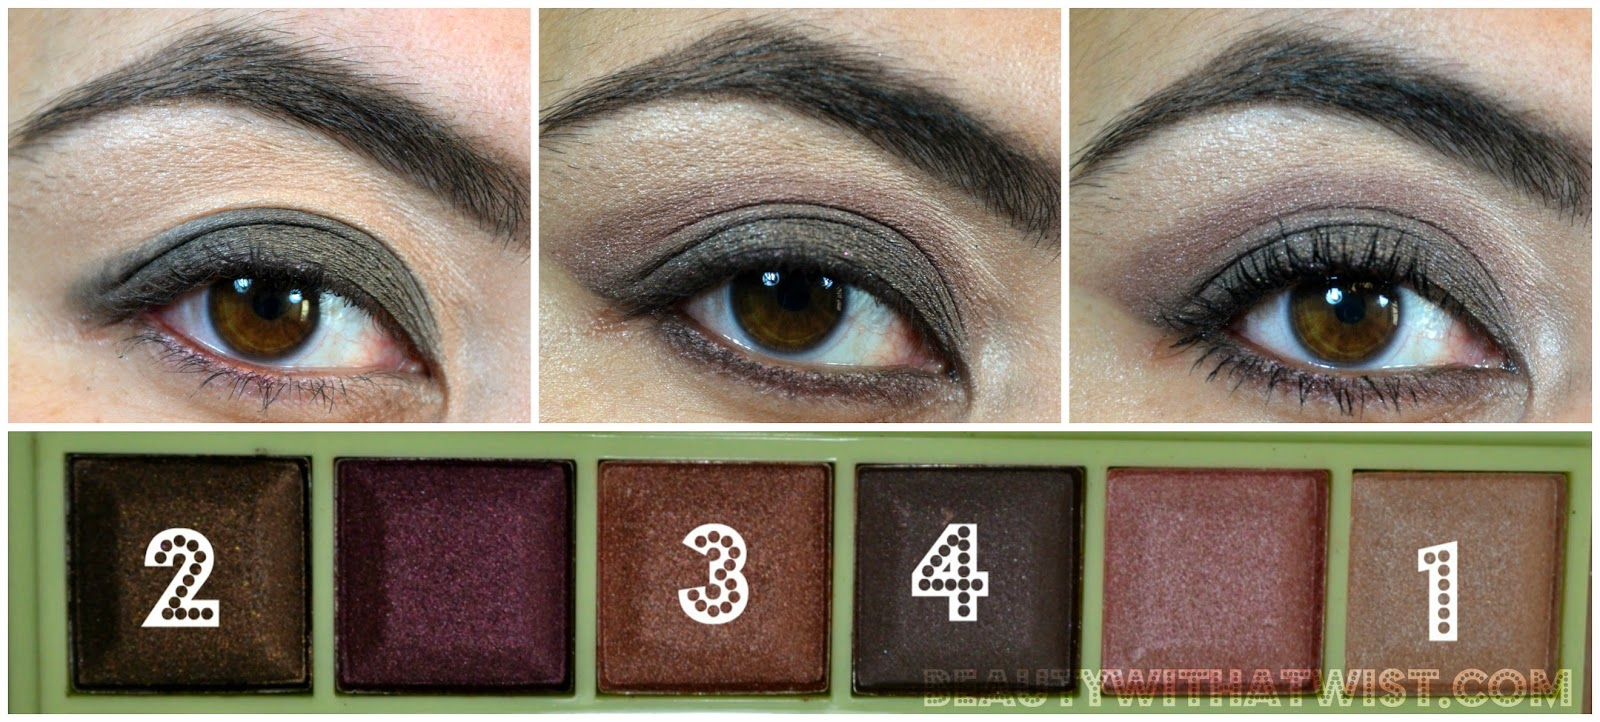 Smoky brown makeup tutorial using Pixi Beauty Plum Quartz palette